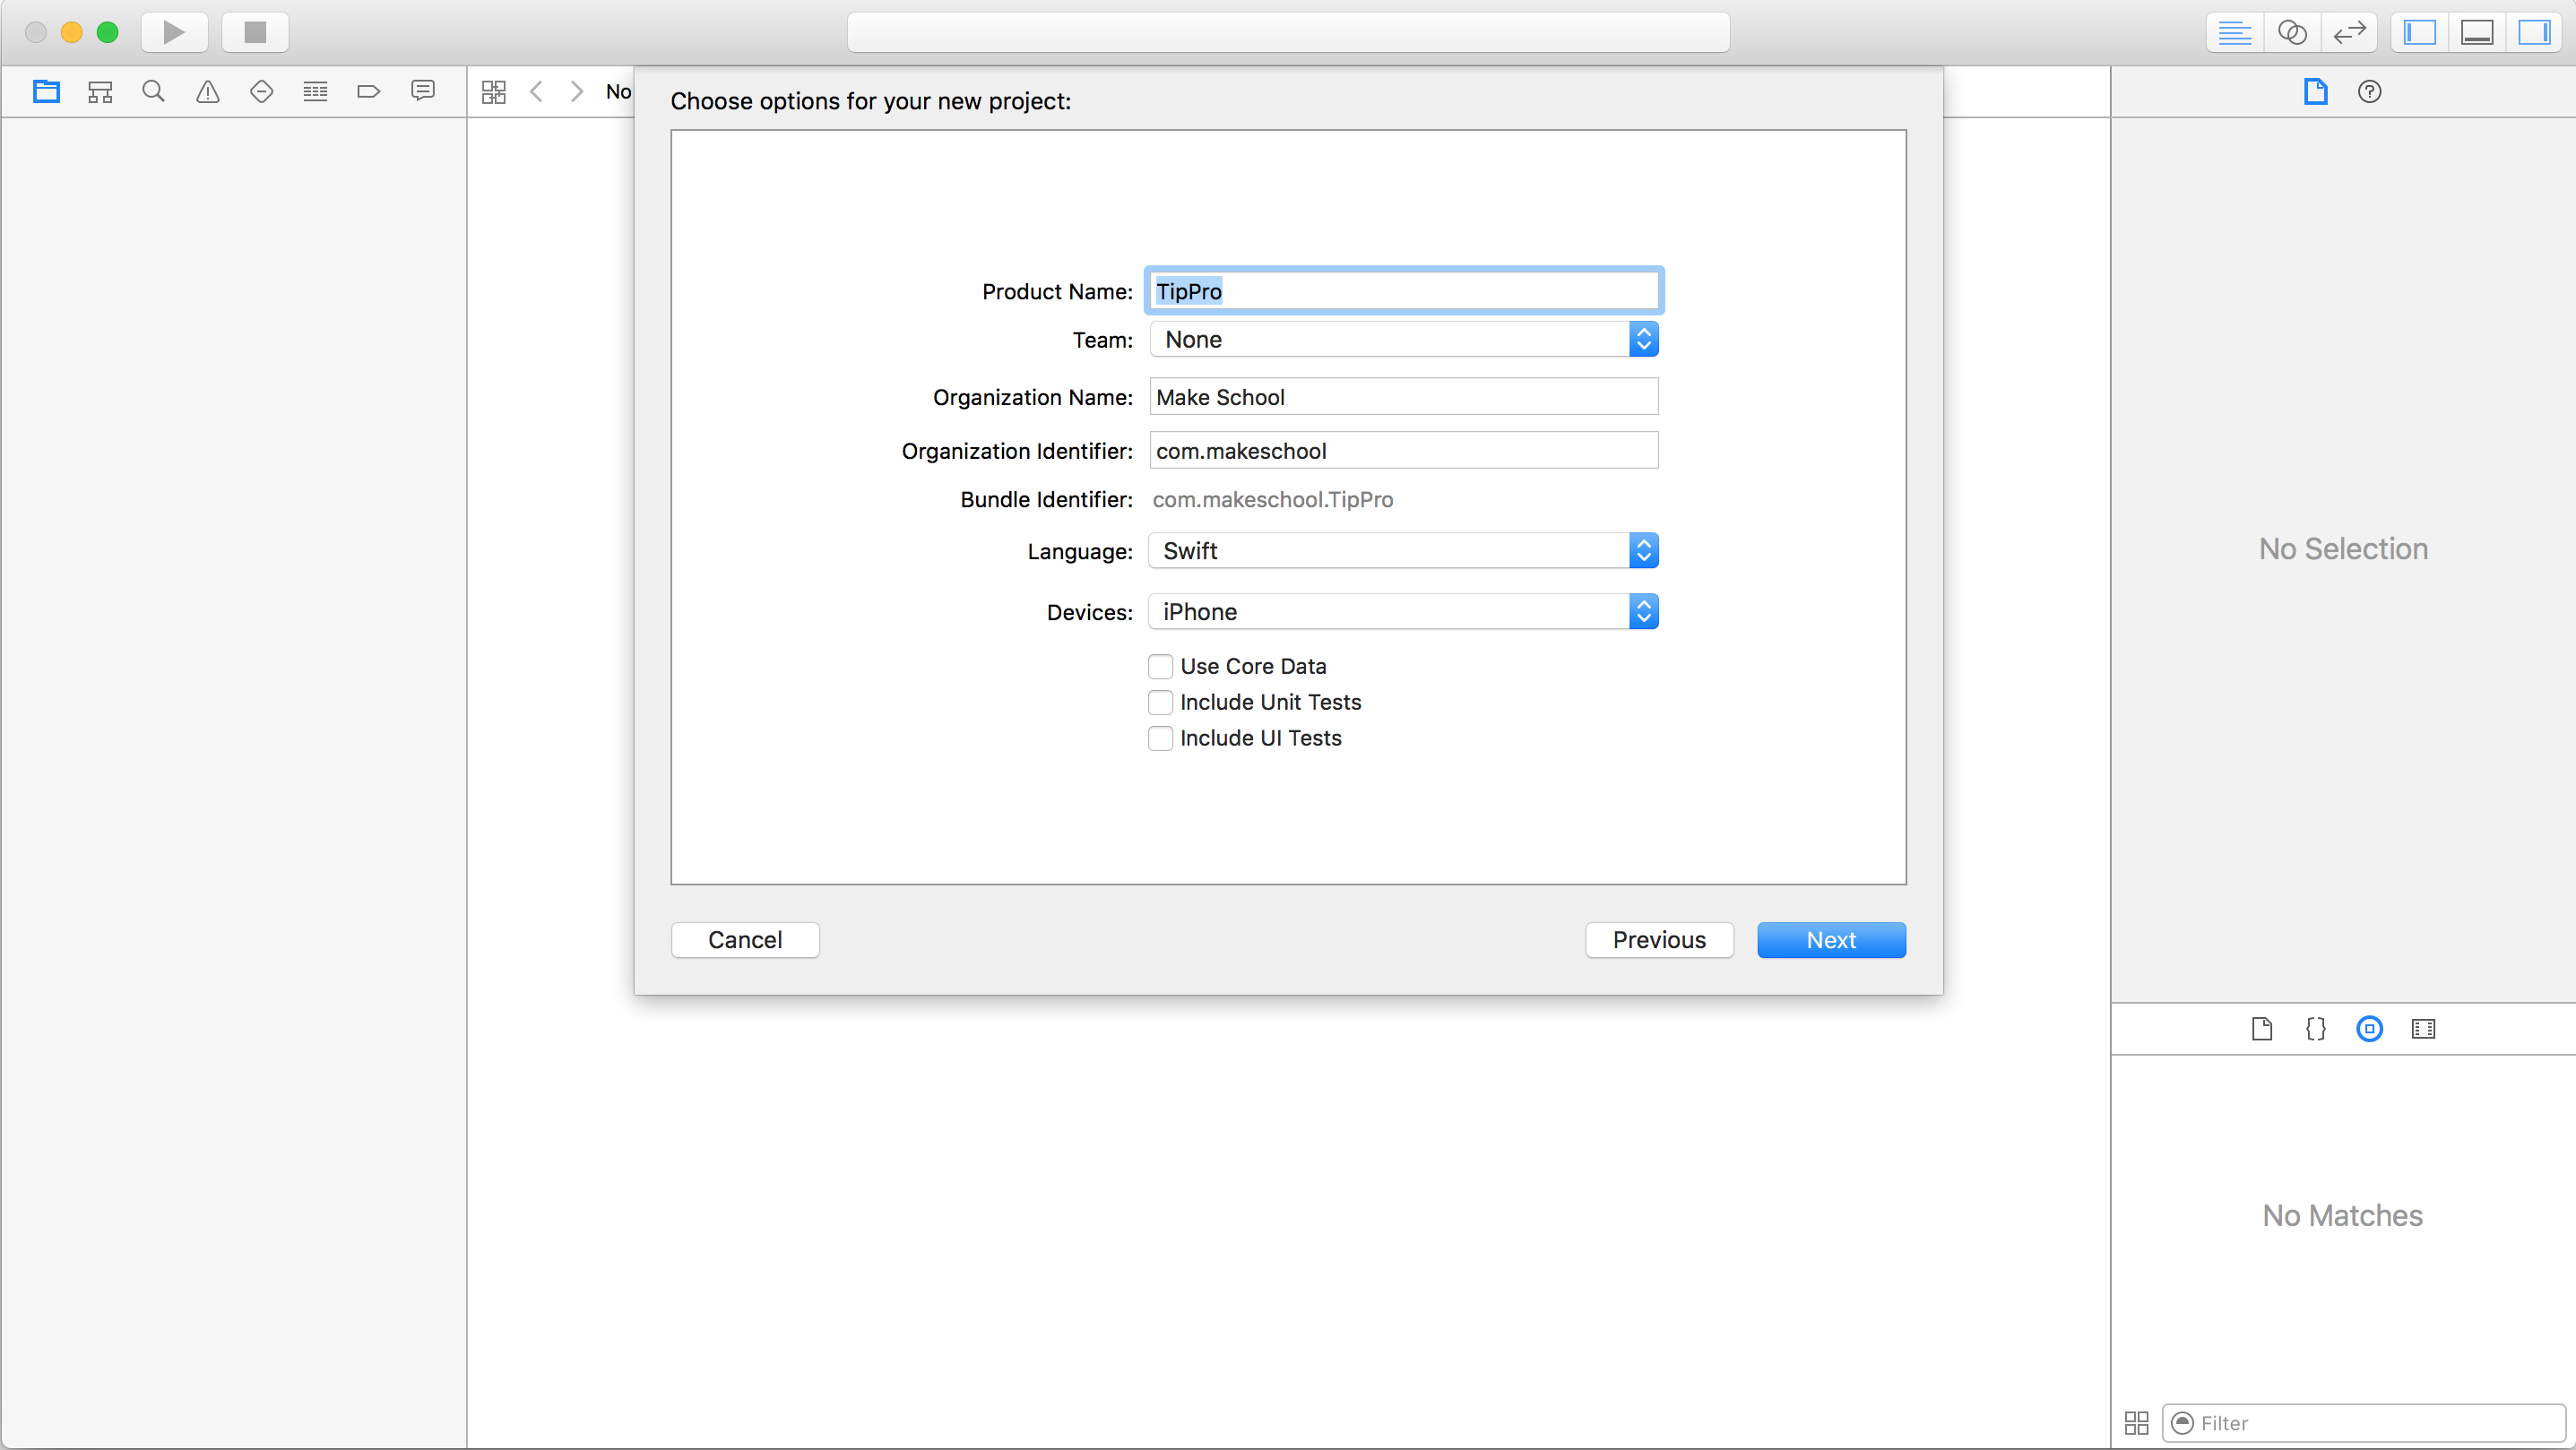 Creating a new project settings